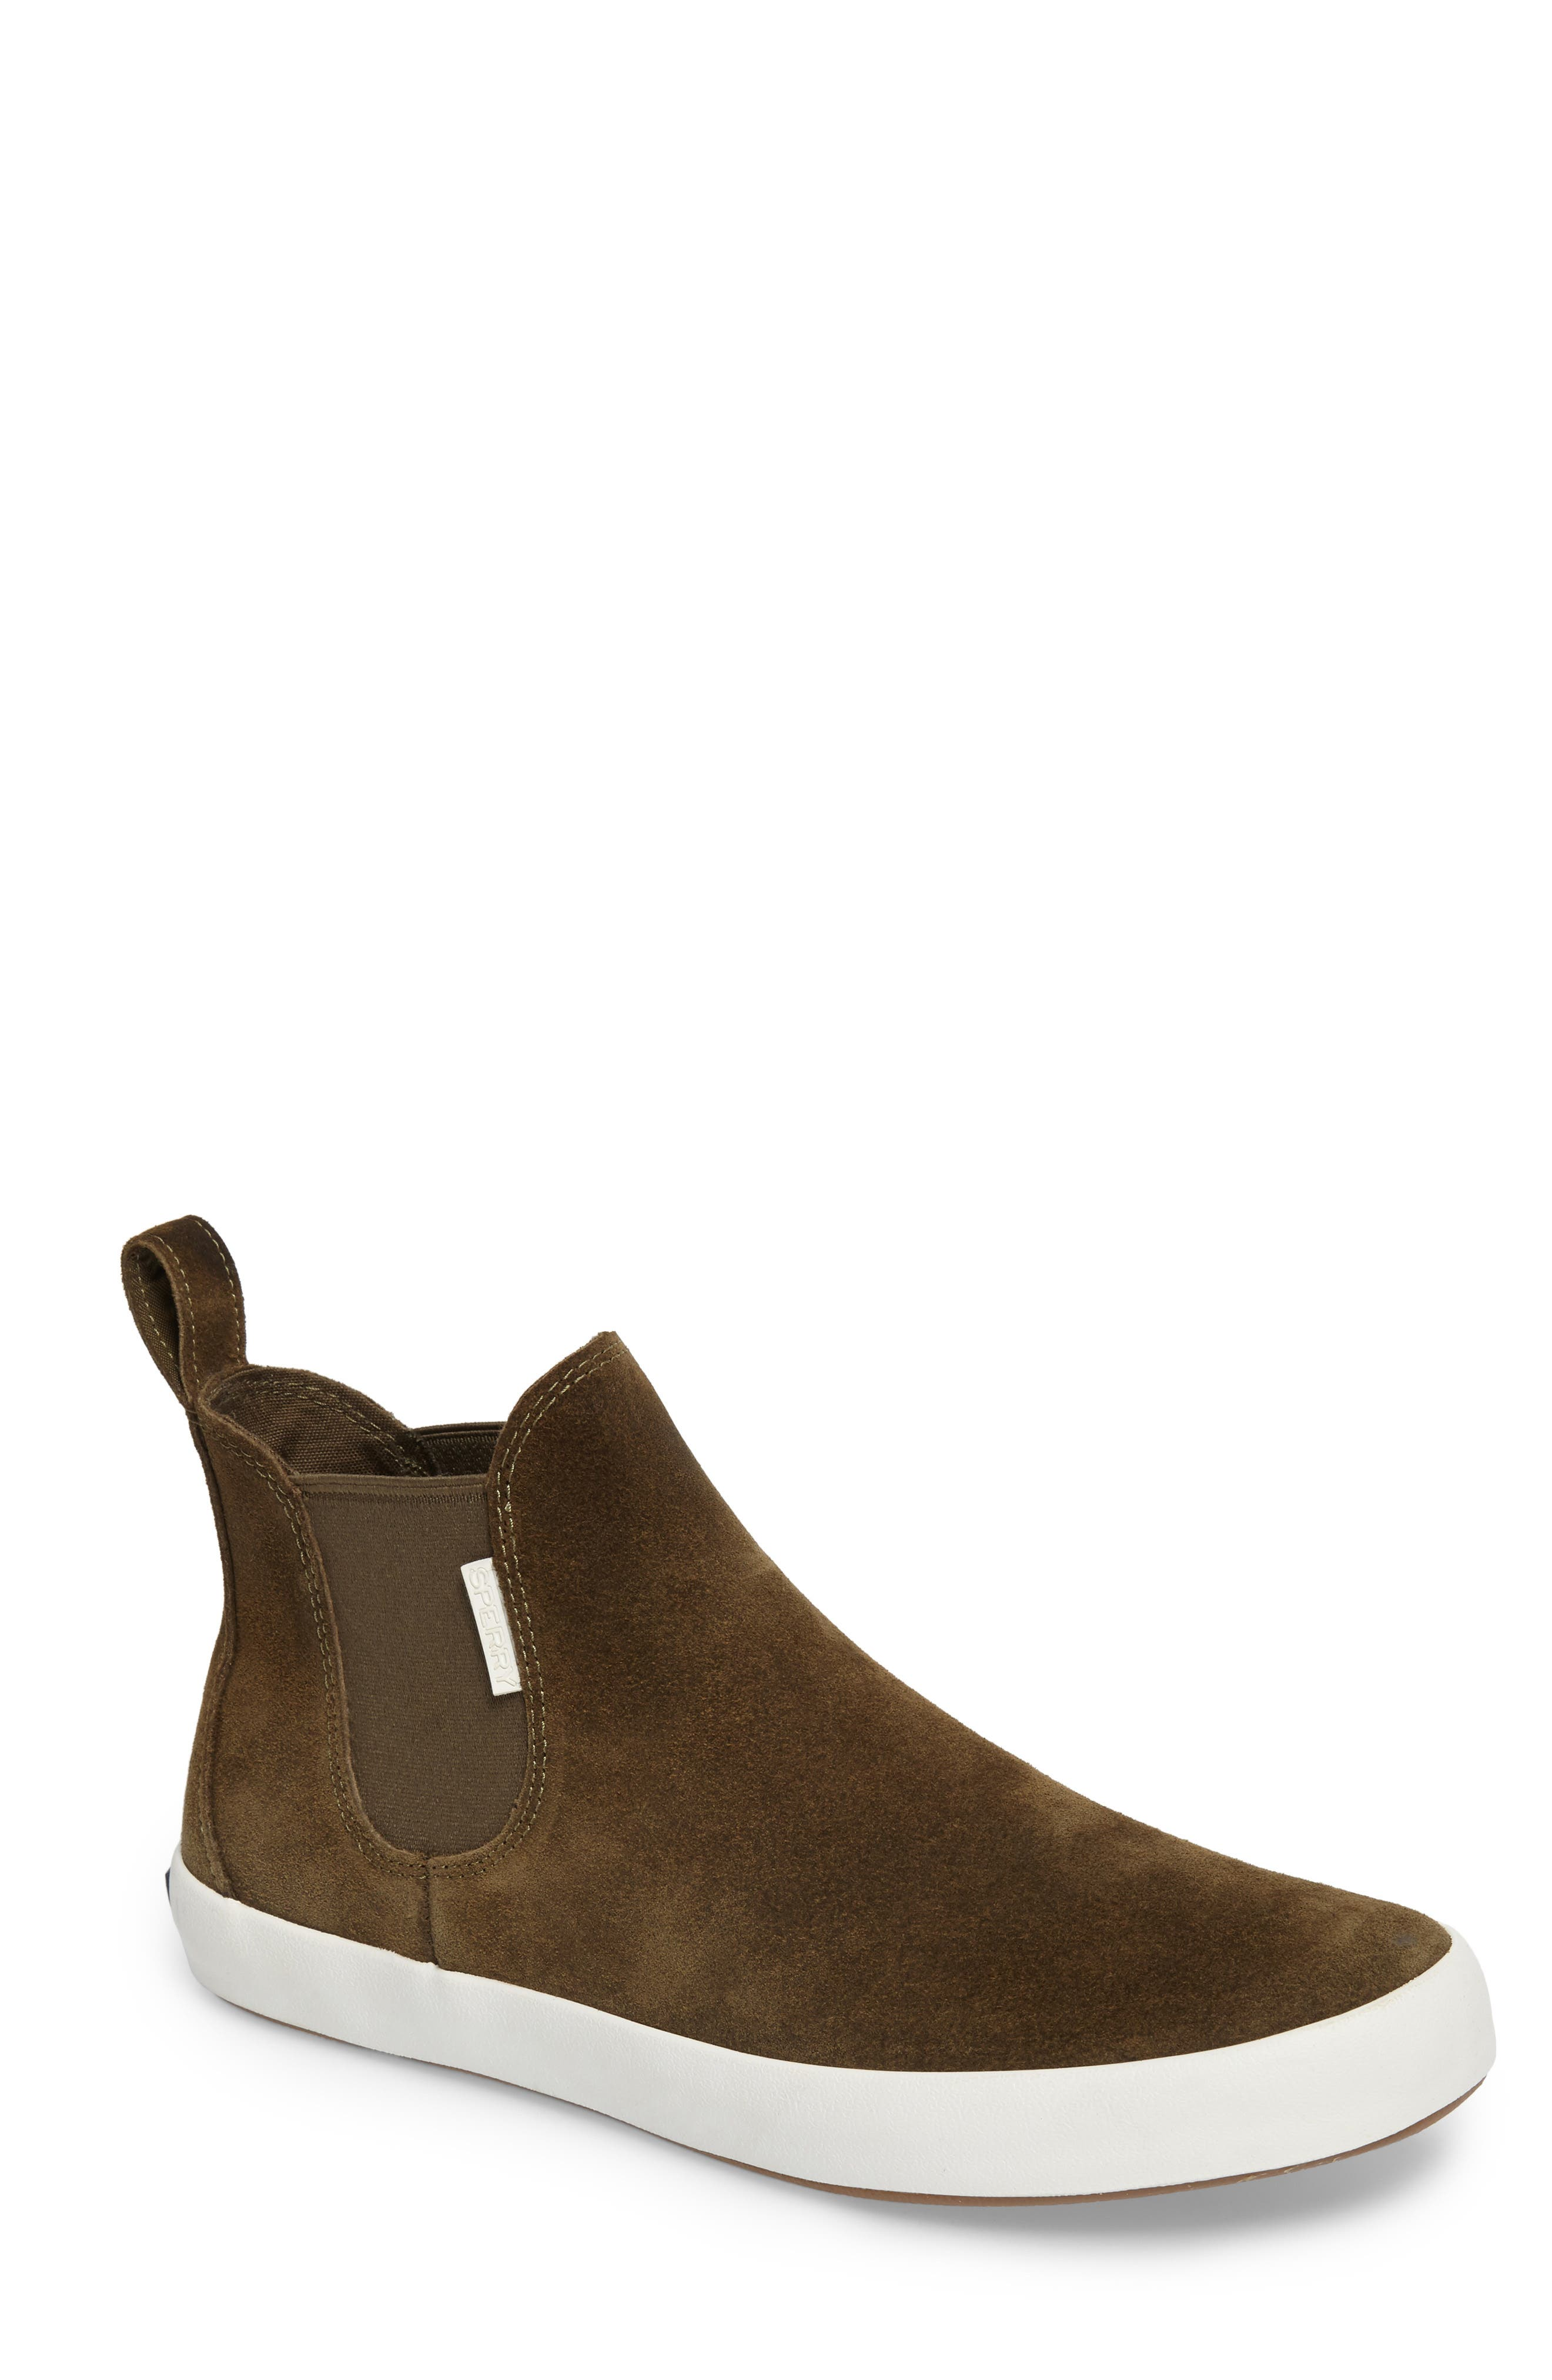 Wahoo Chelsea Sneaker Boot,                         Main,                         color, Olive Leather